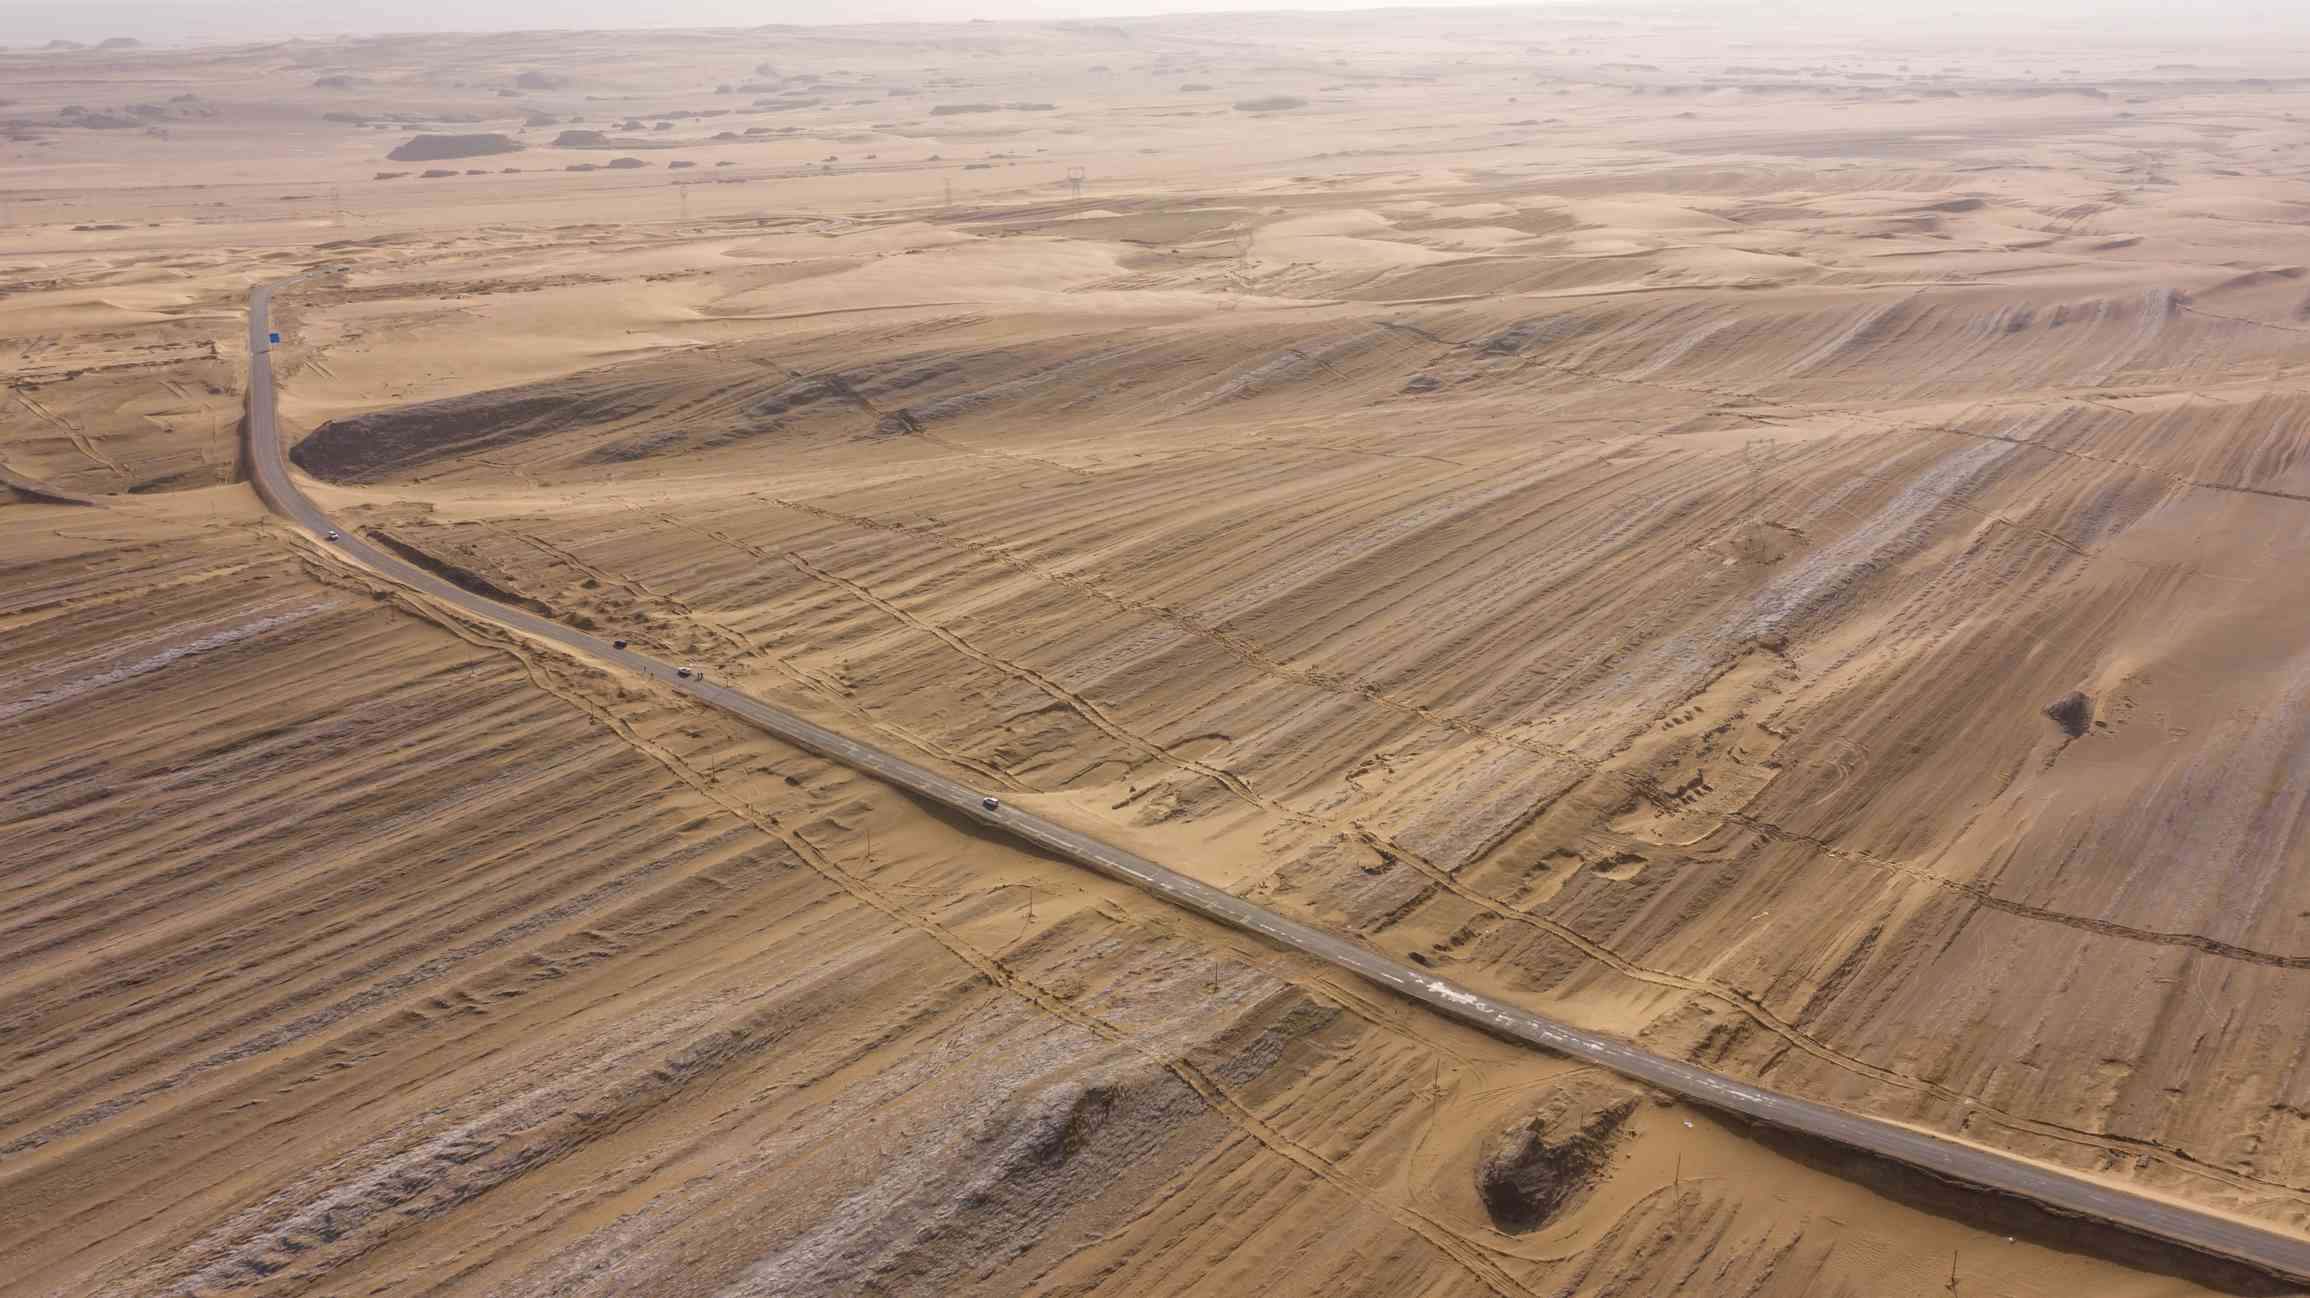 A desert in China with a road running through it.